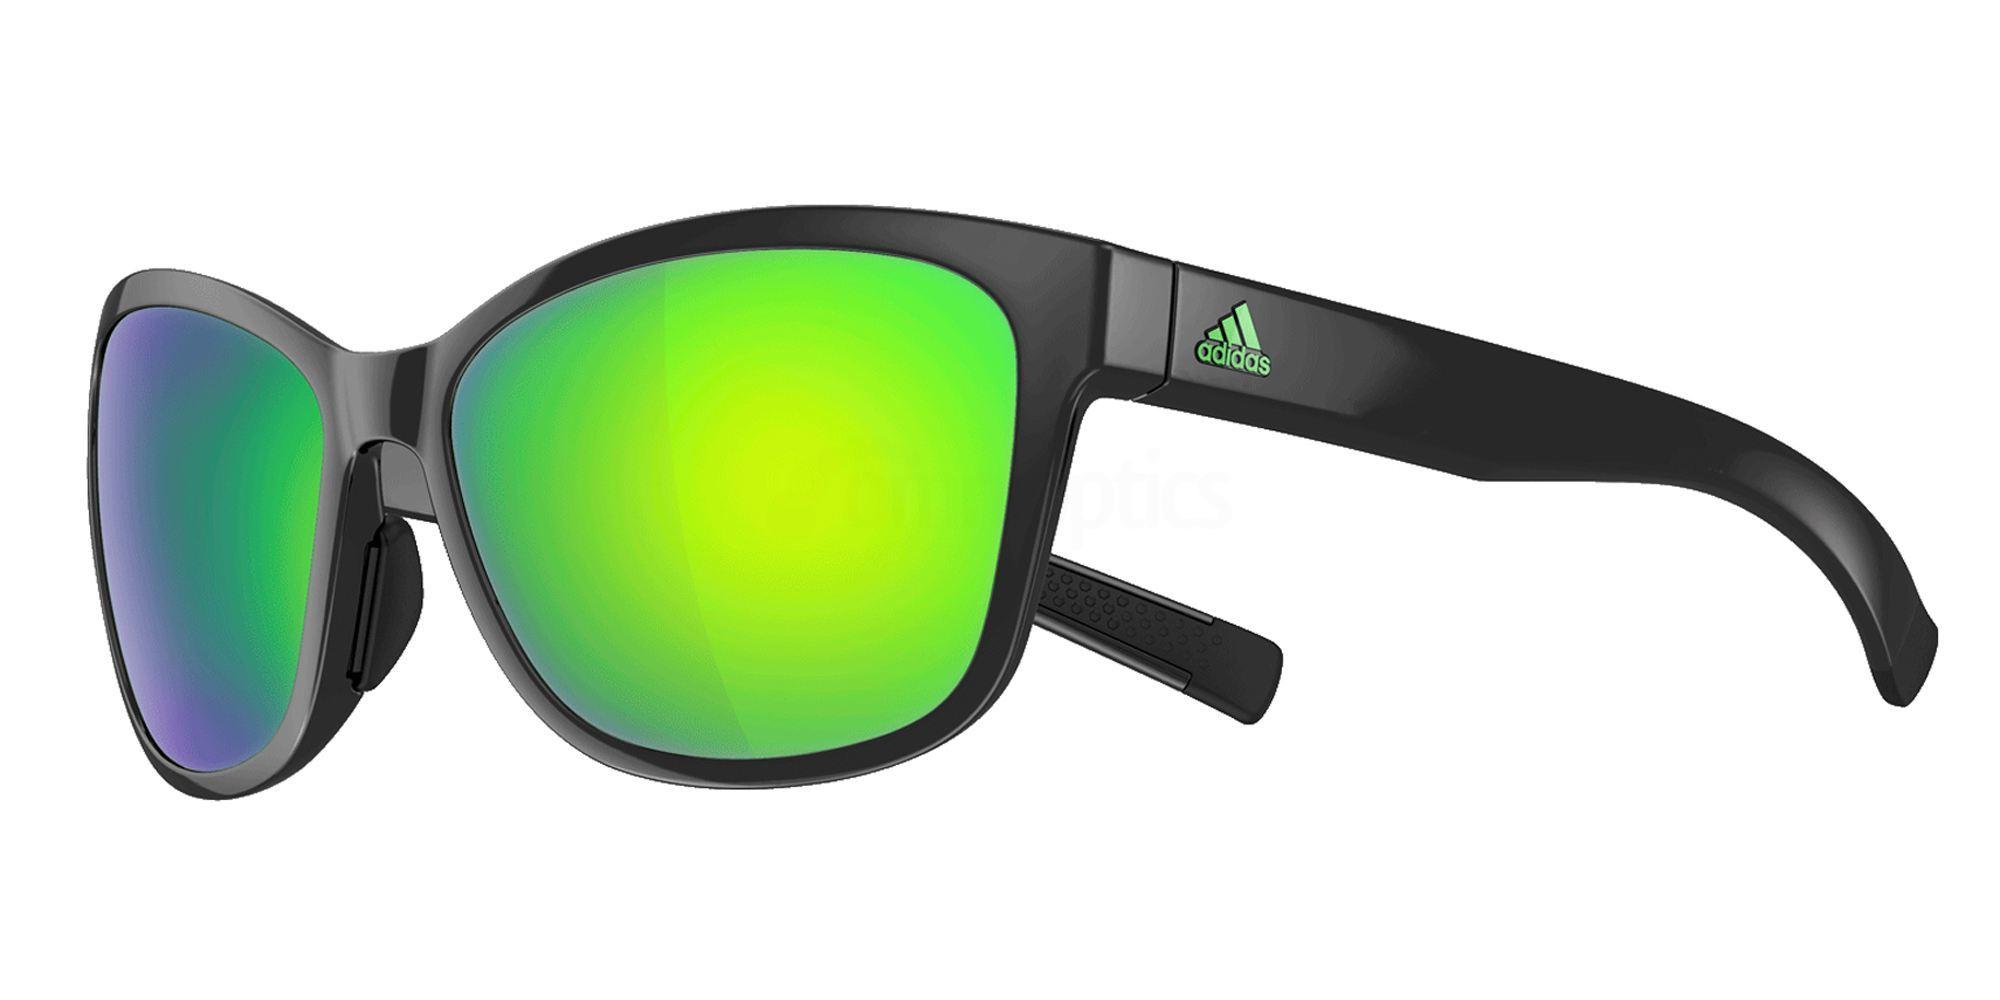 a428 00 6050 a428 excalate Sunglasses, Adidas